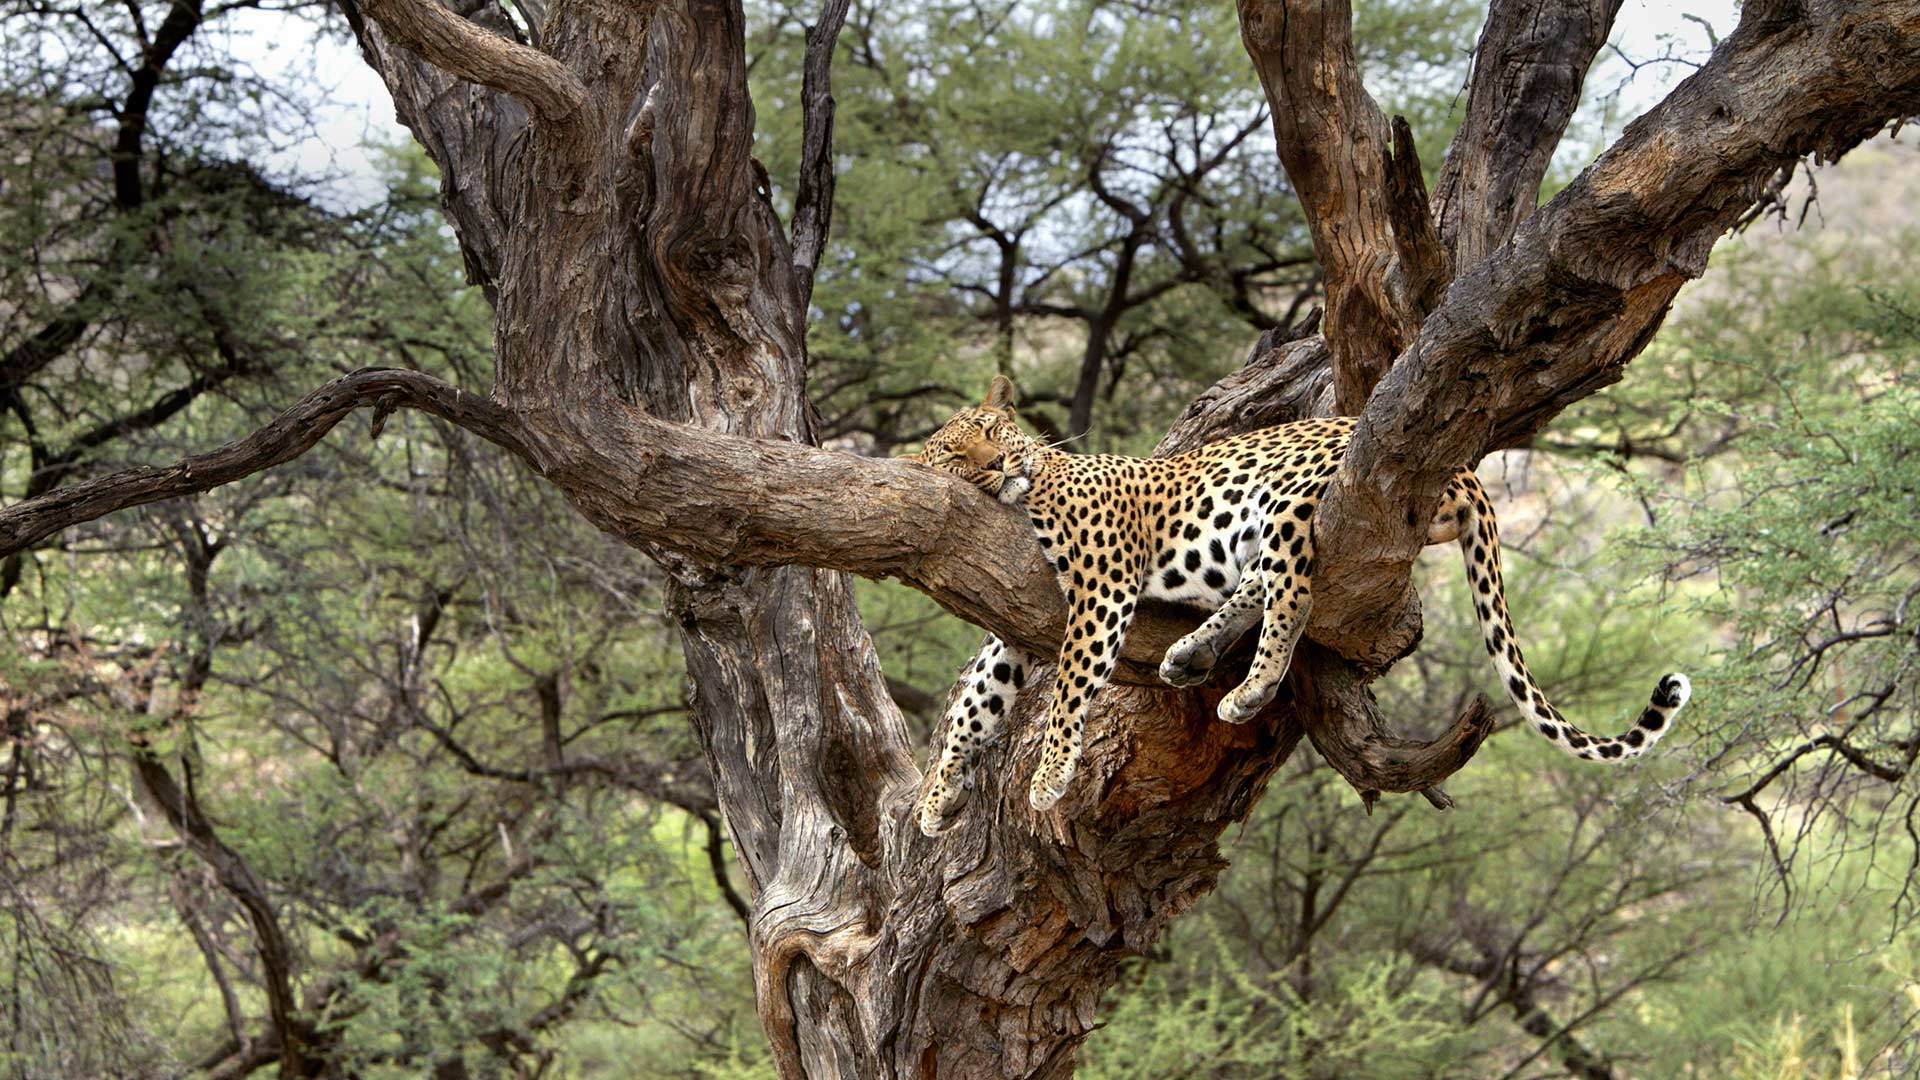 Leopard Namibia Bing Wallpaper Download 1920x1080